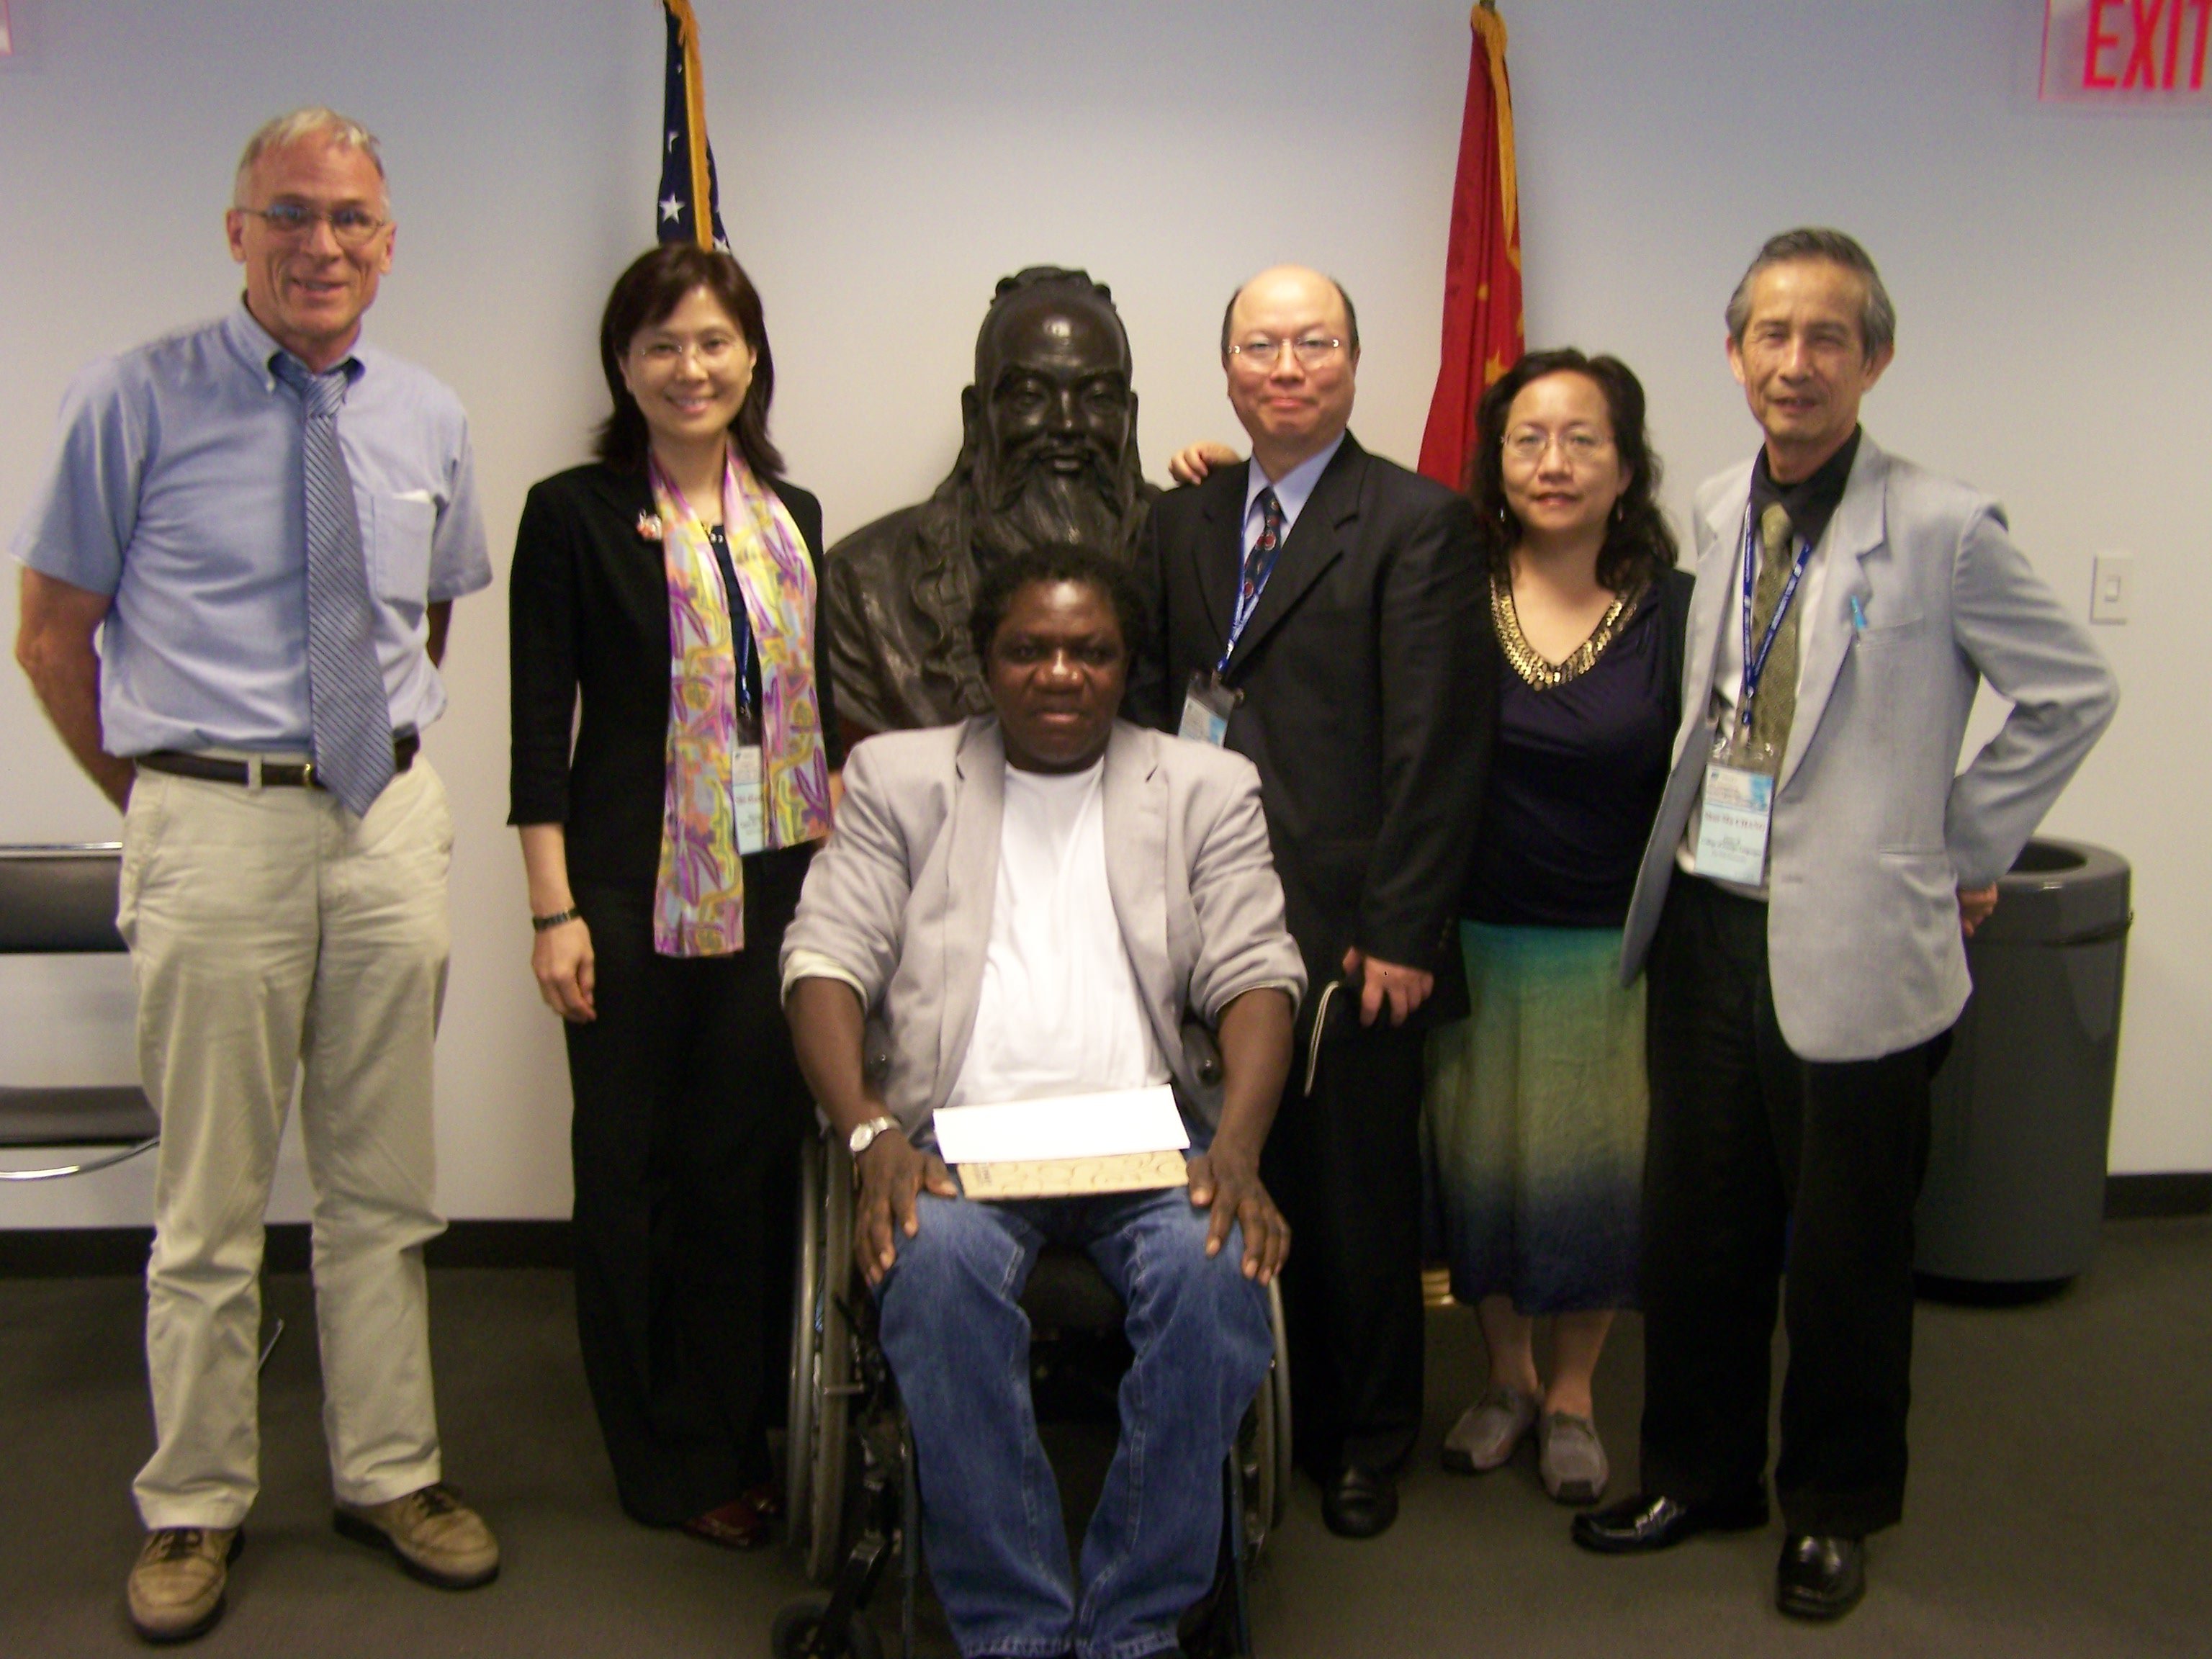 Dr. Gene Hammond, Director of the SB Writing and Rhetoric Program (left) and Dr. Prosper Sanou, Professor of French Language and Literature (center) pose with members of the Taiwan Assessment and Evaluation Association in the Wang Center's Confucius Institute on July 15.